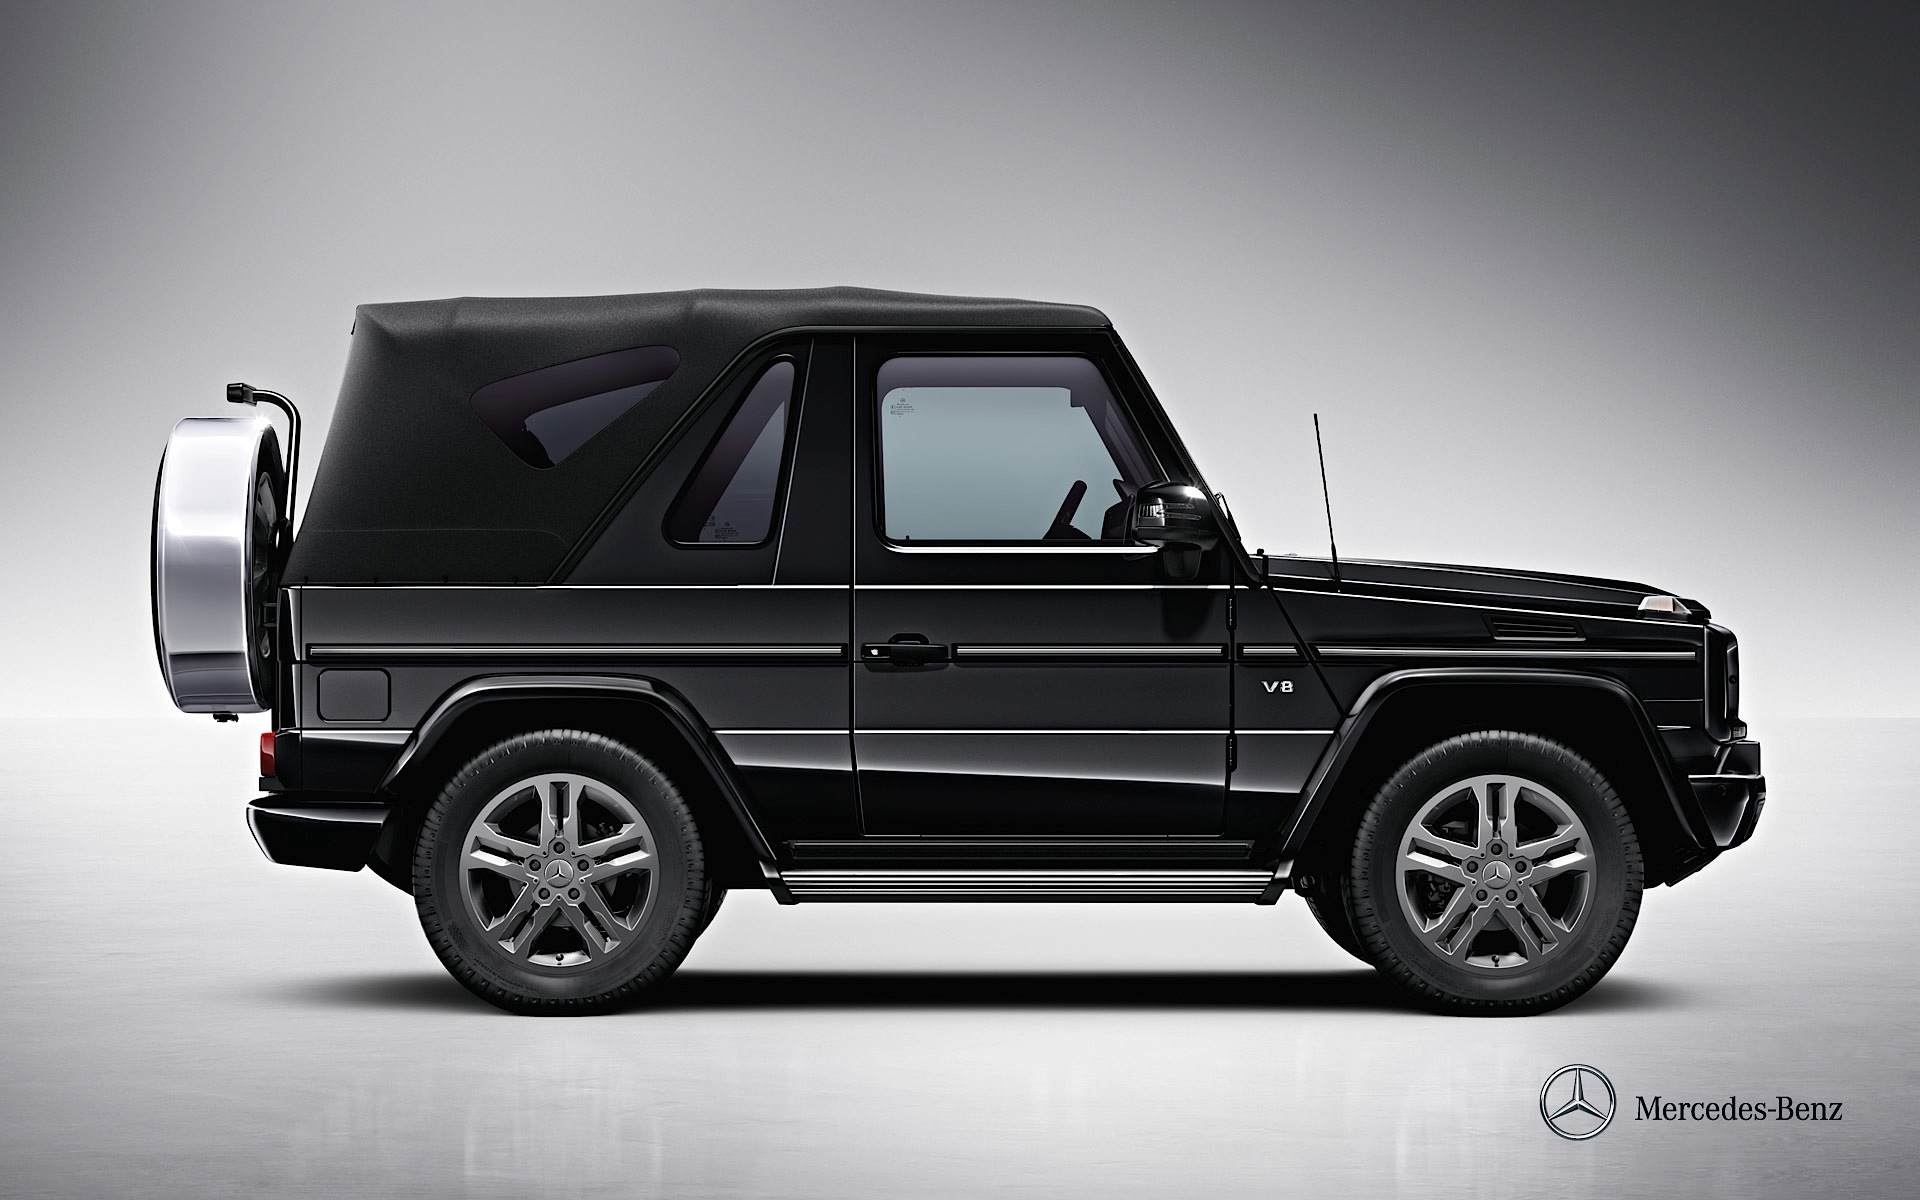 mercedes benz g klasse cabrio w463 2012 2013. Black Bedroom Furniture Sets. Home Design Ideas